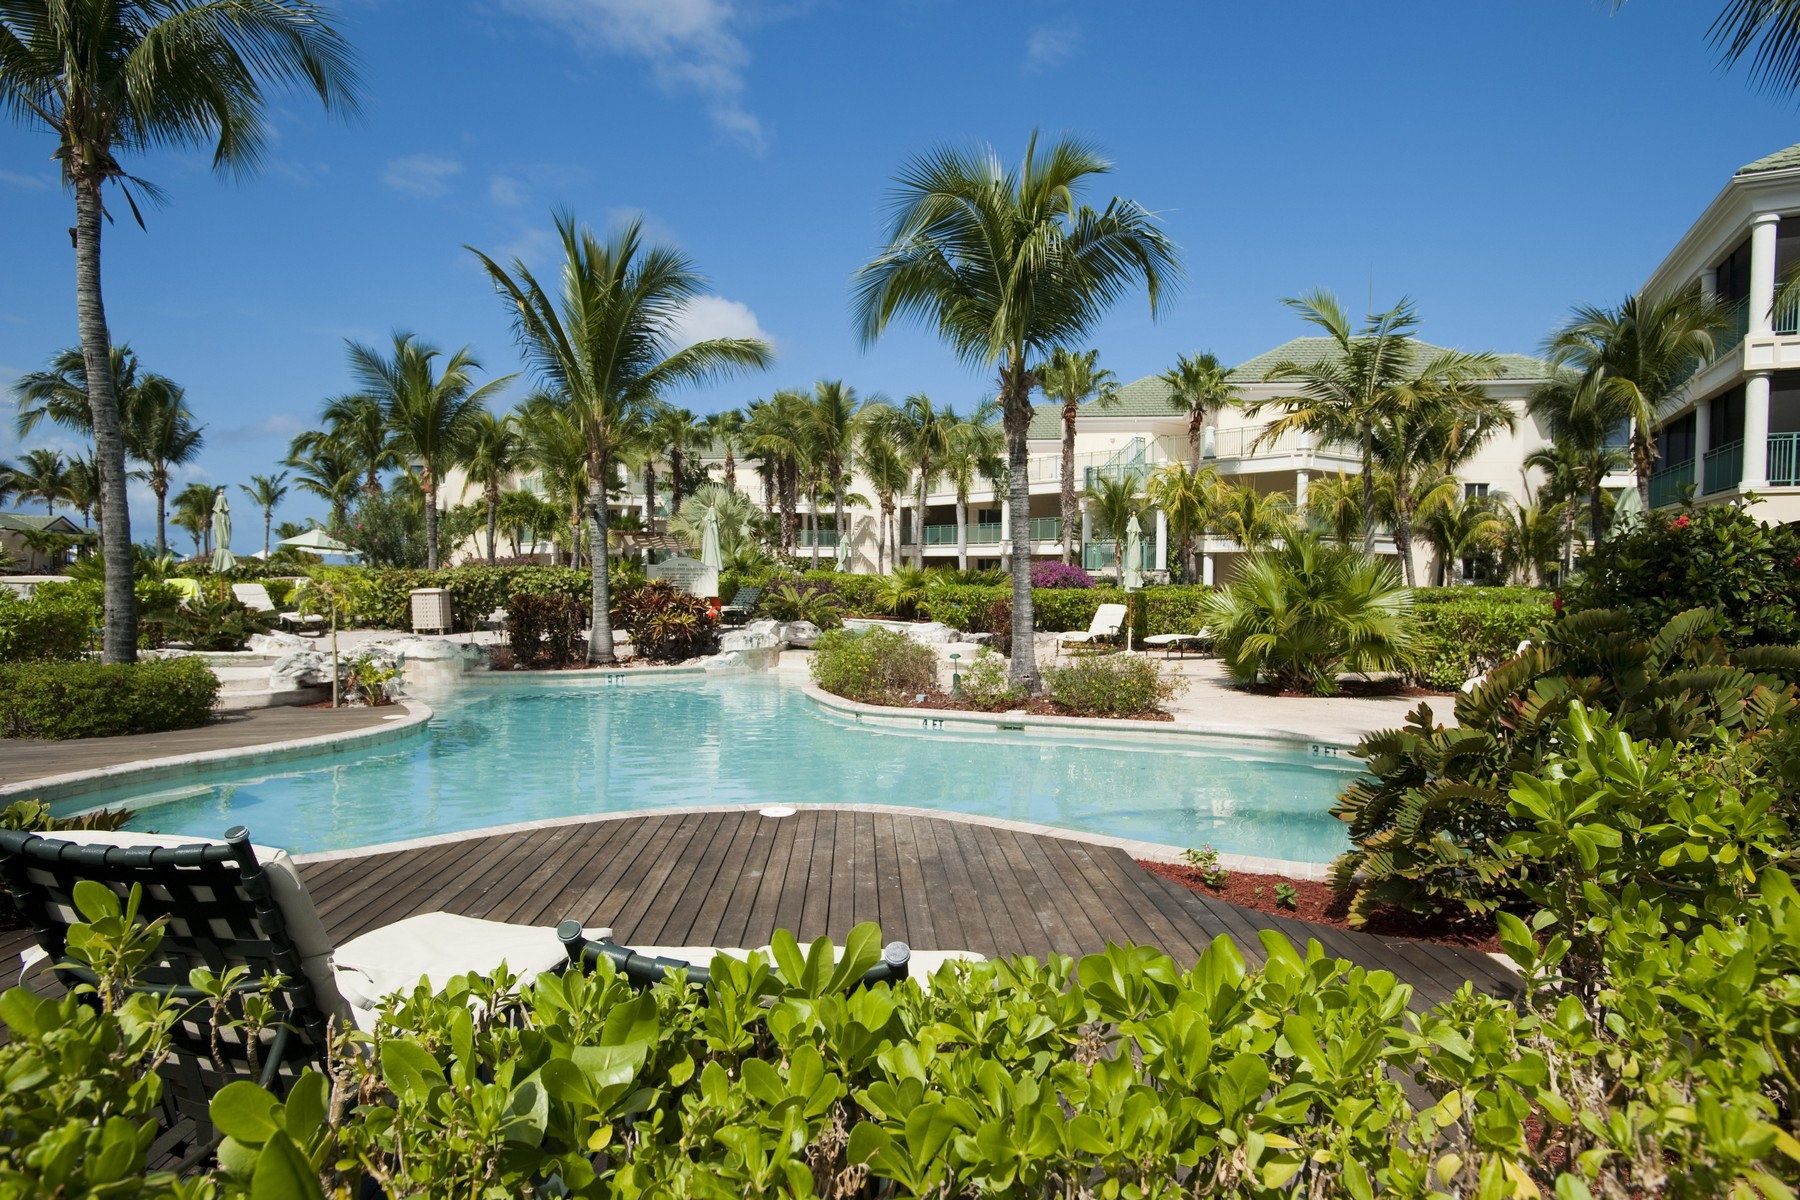 Additional photo for property listing at The Sands at Grace Bay - Suite 5105 The Sands On Grace Bay, Grace Bay, Providenciales Turks And Caicos Islands